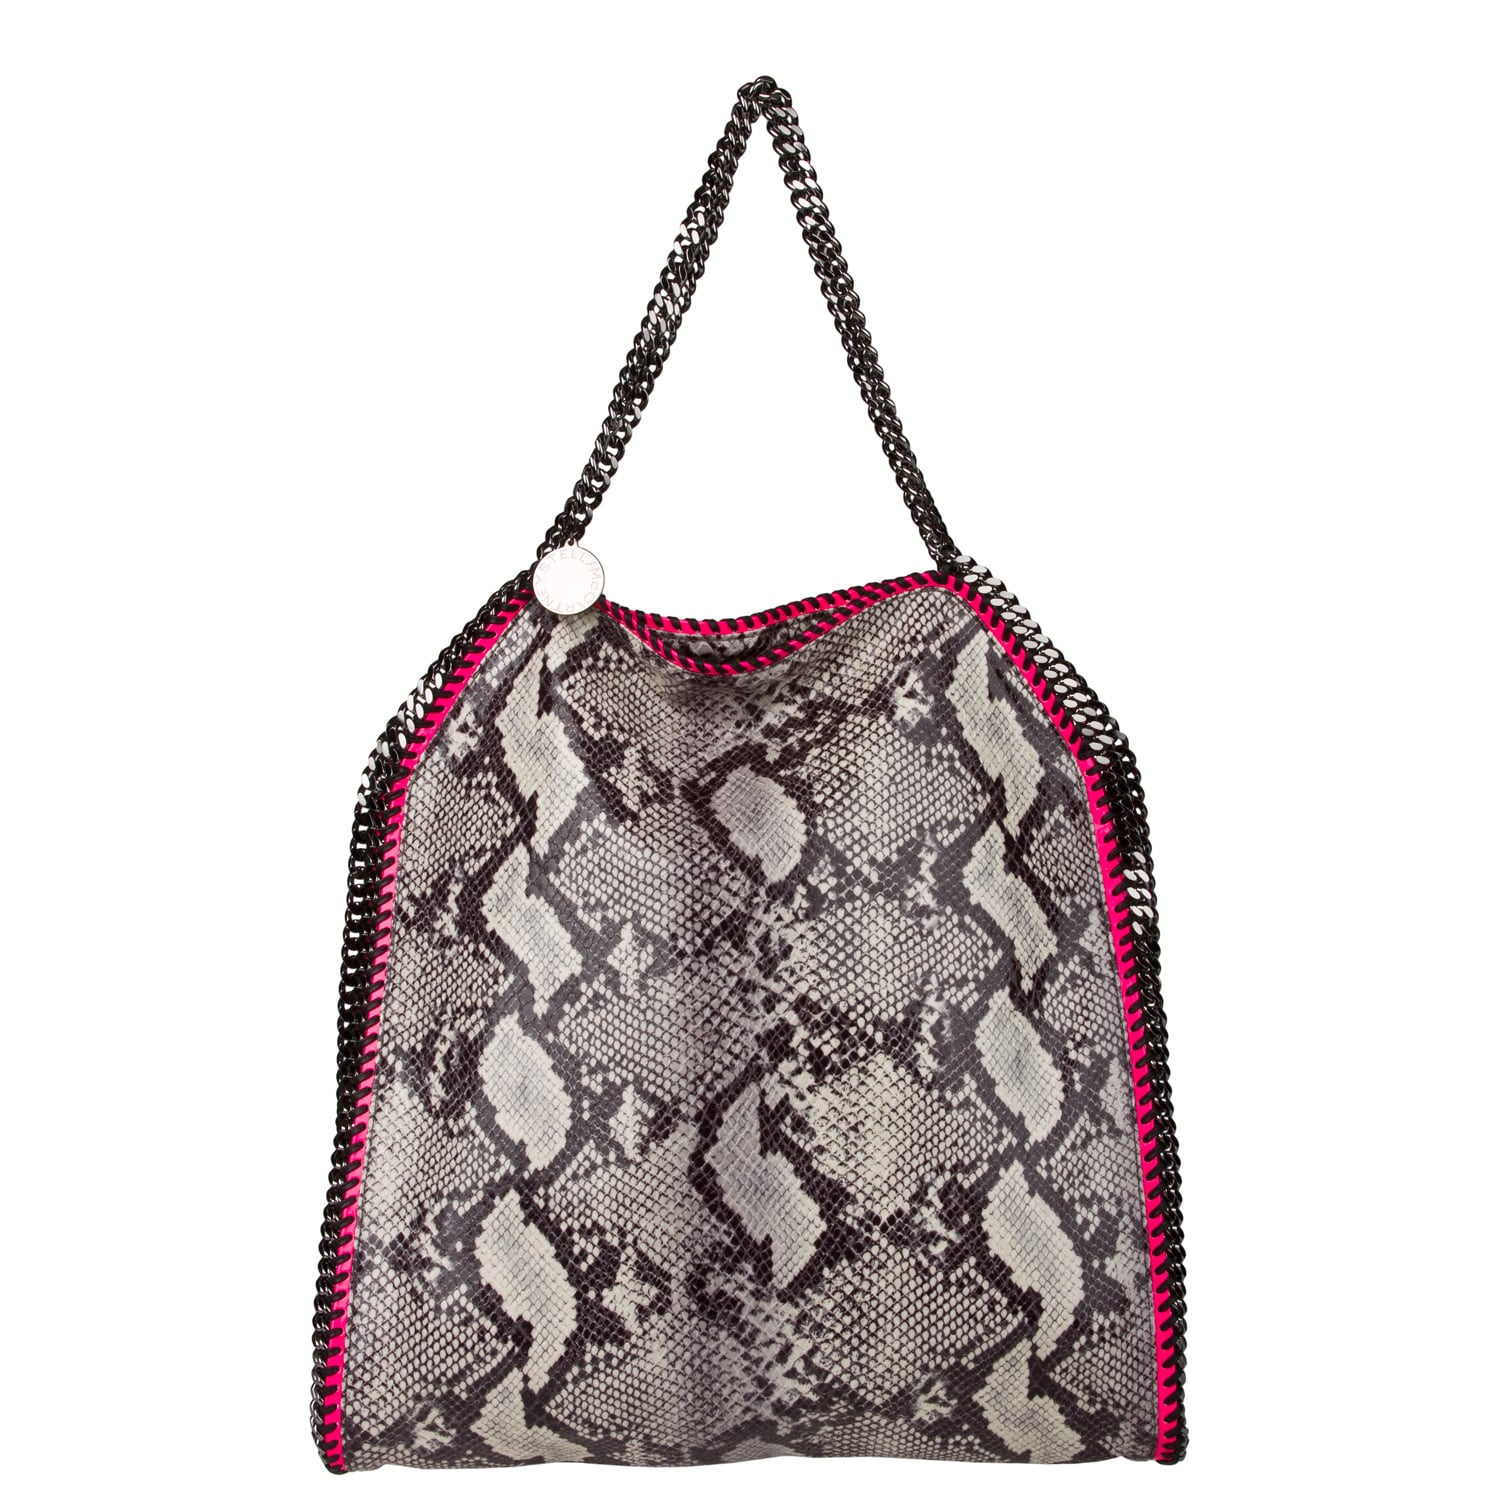 Stella McCartney Faux Python Large Tote